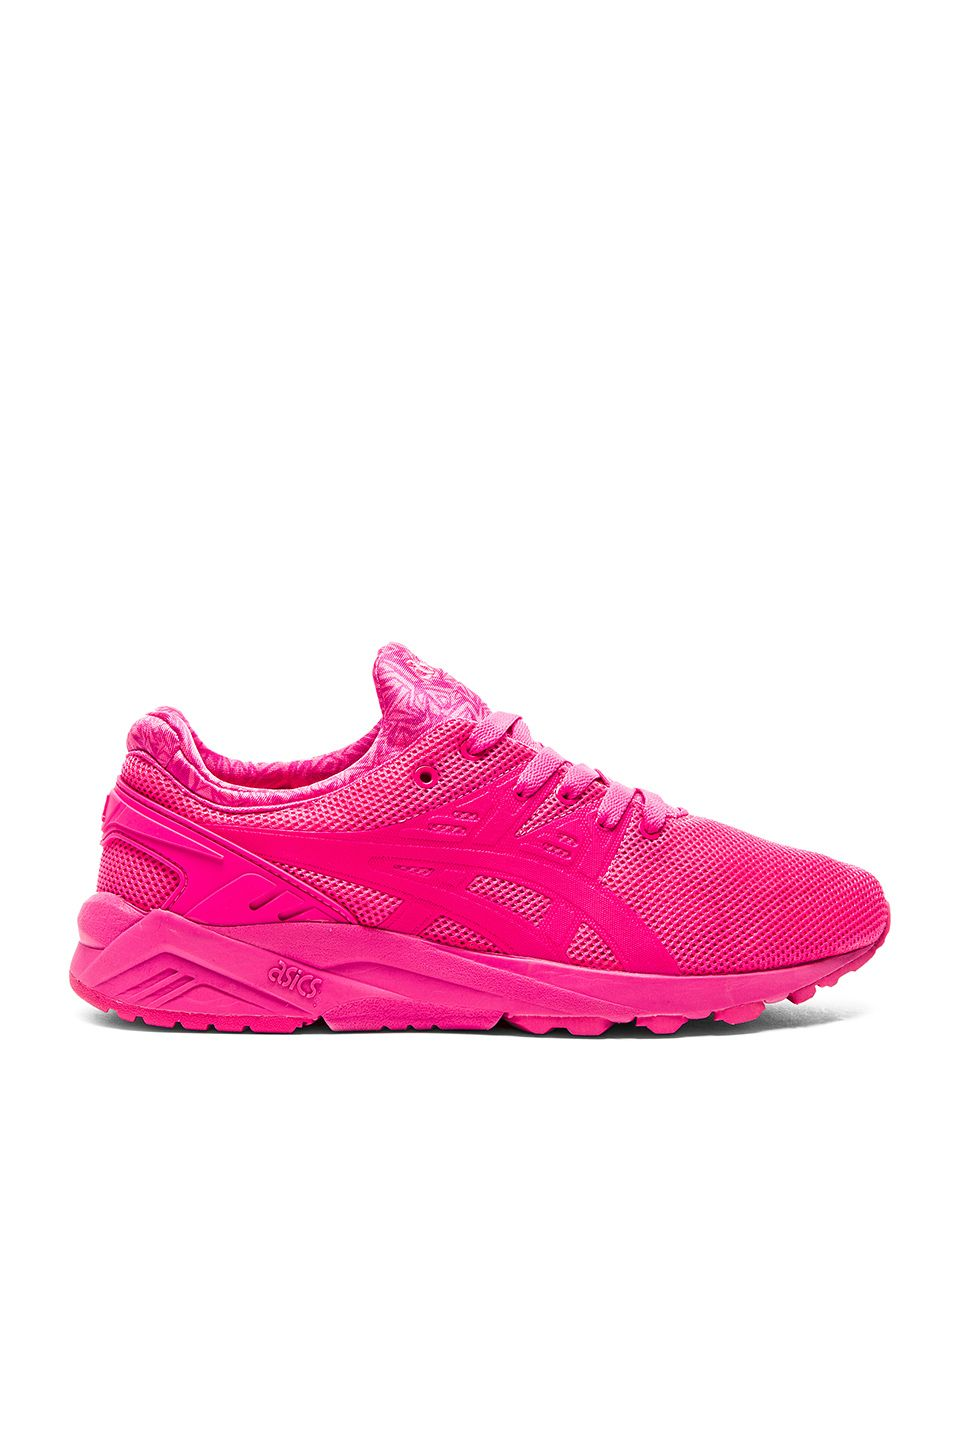 Asics Gel Kayano Trainer EVO // $100.00